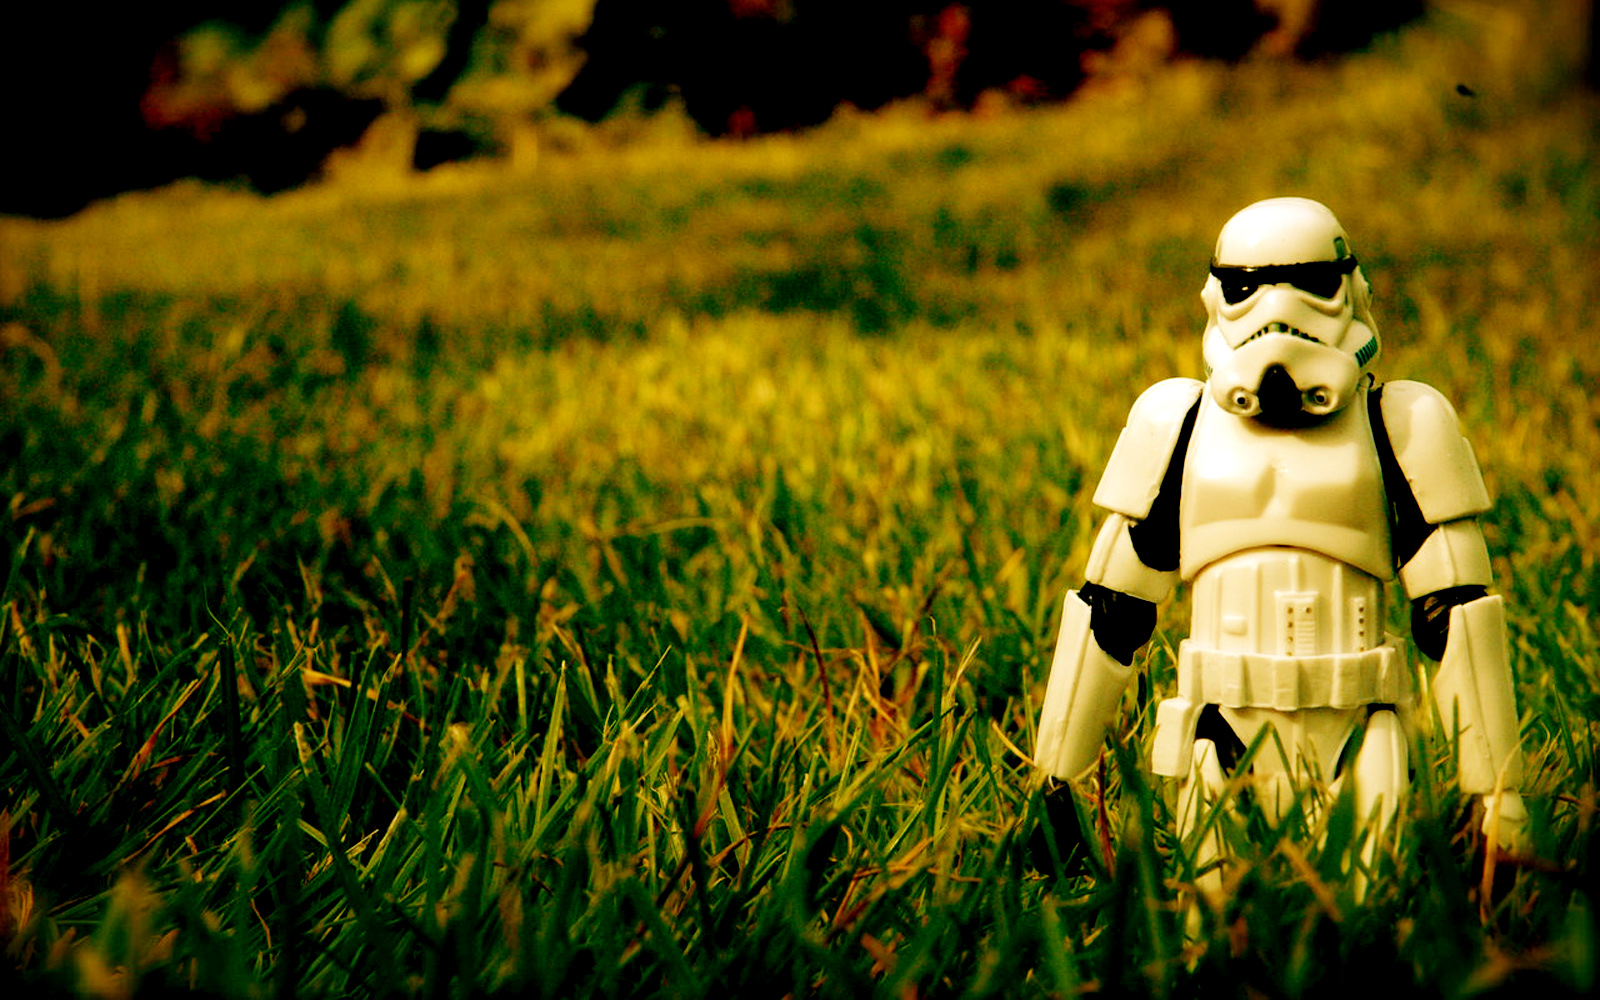 stormtroopers star wars hd wallpapers hd wallpapers